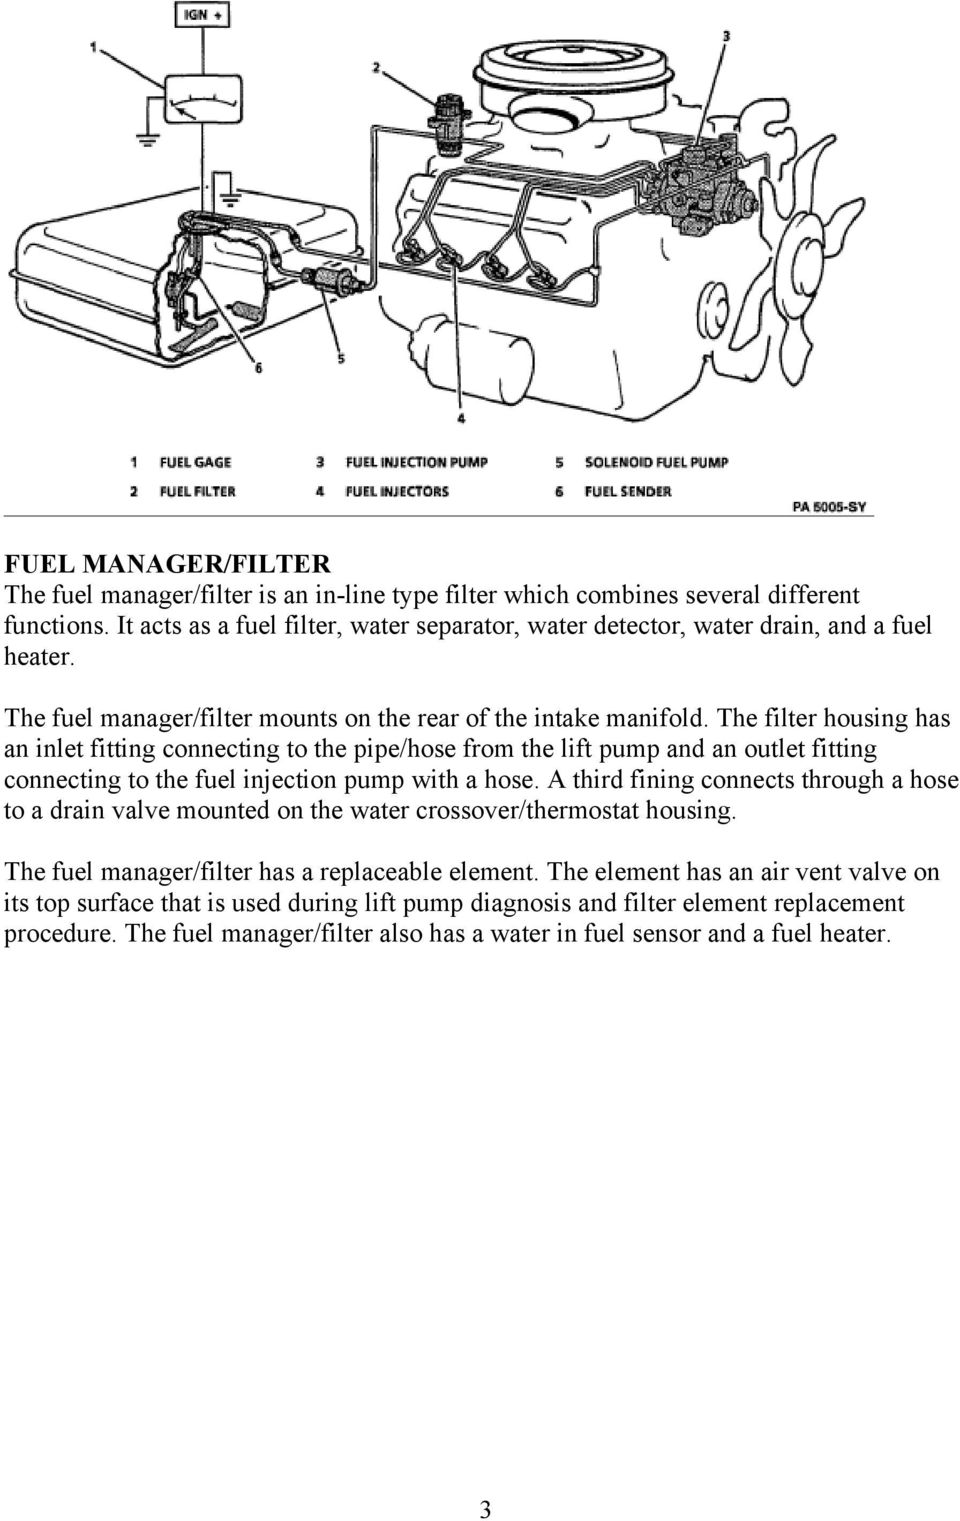 Pdf 2011 F250 Fuel Filter Housing The Has An Inlet Fitting Connecting To Pipe Hose From Lift